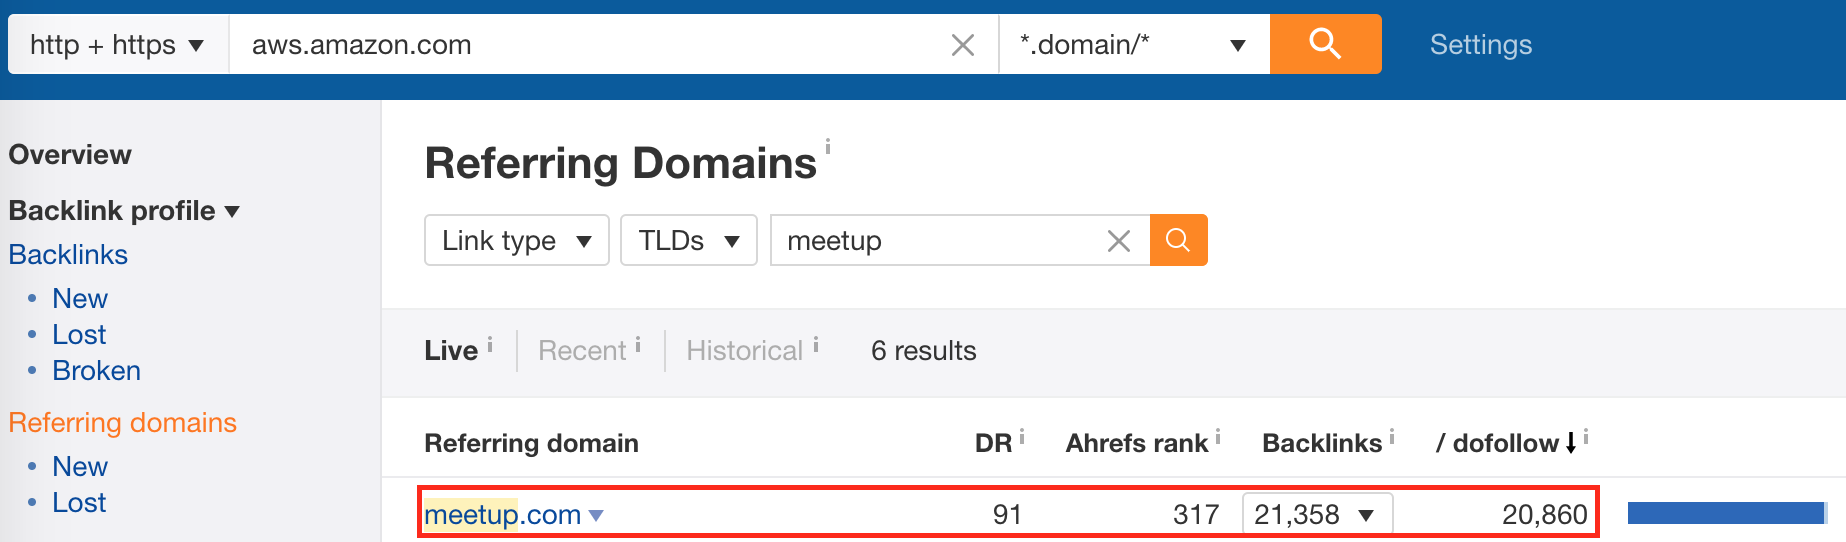 Screenshot showing referring domains to a site